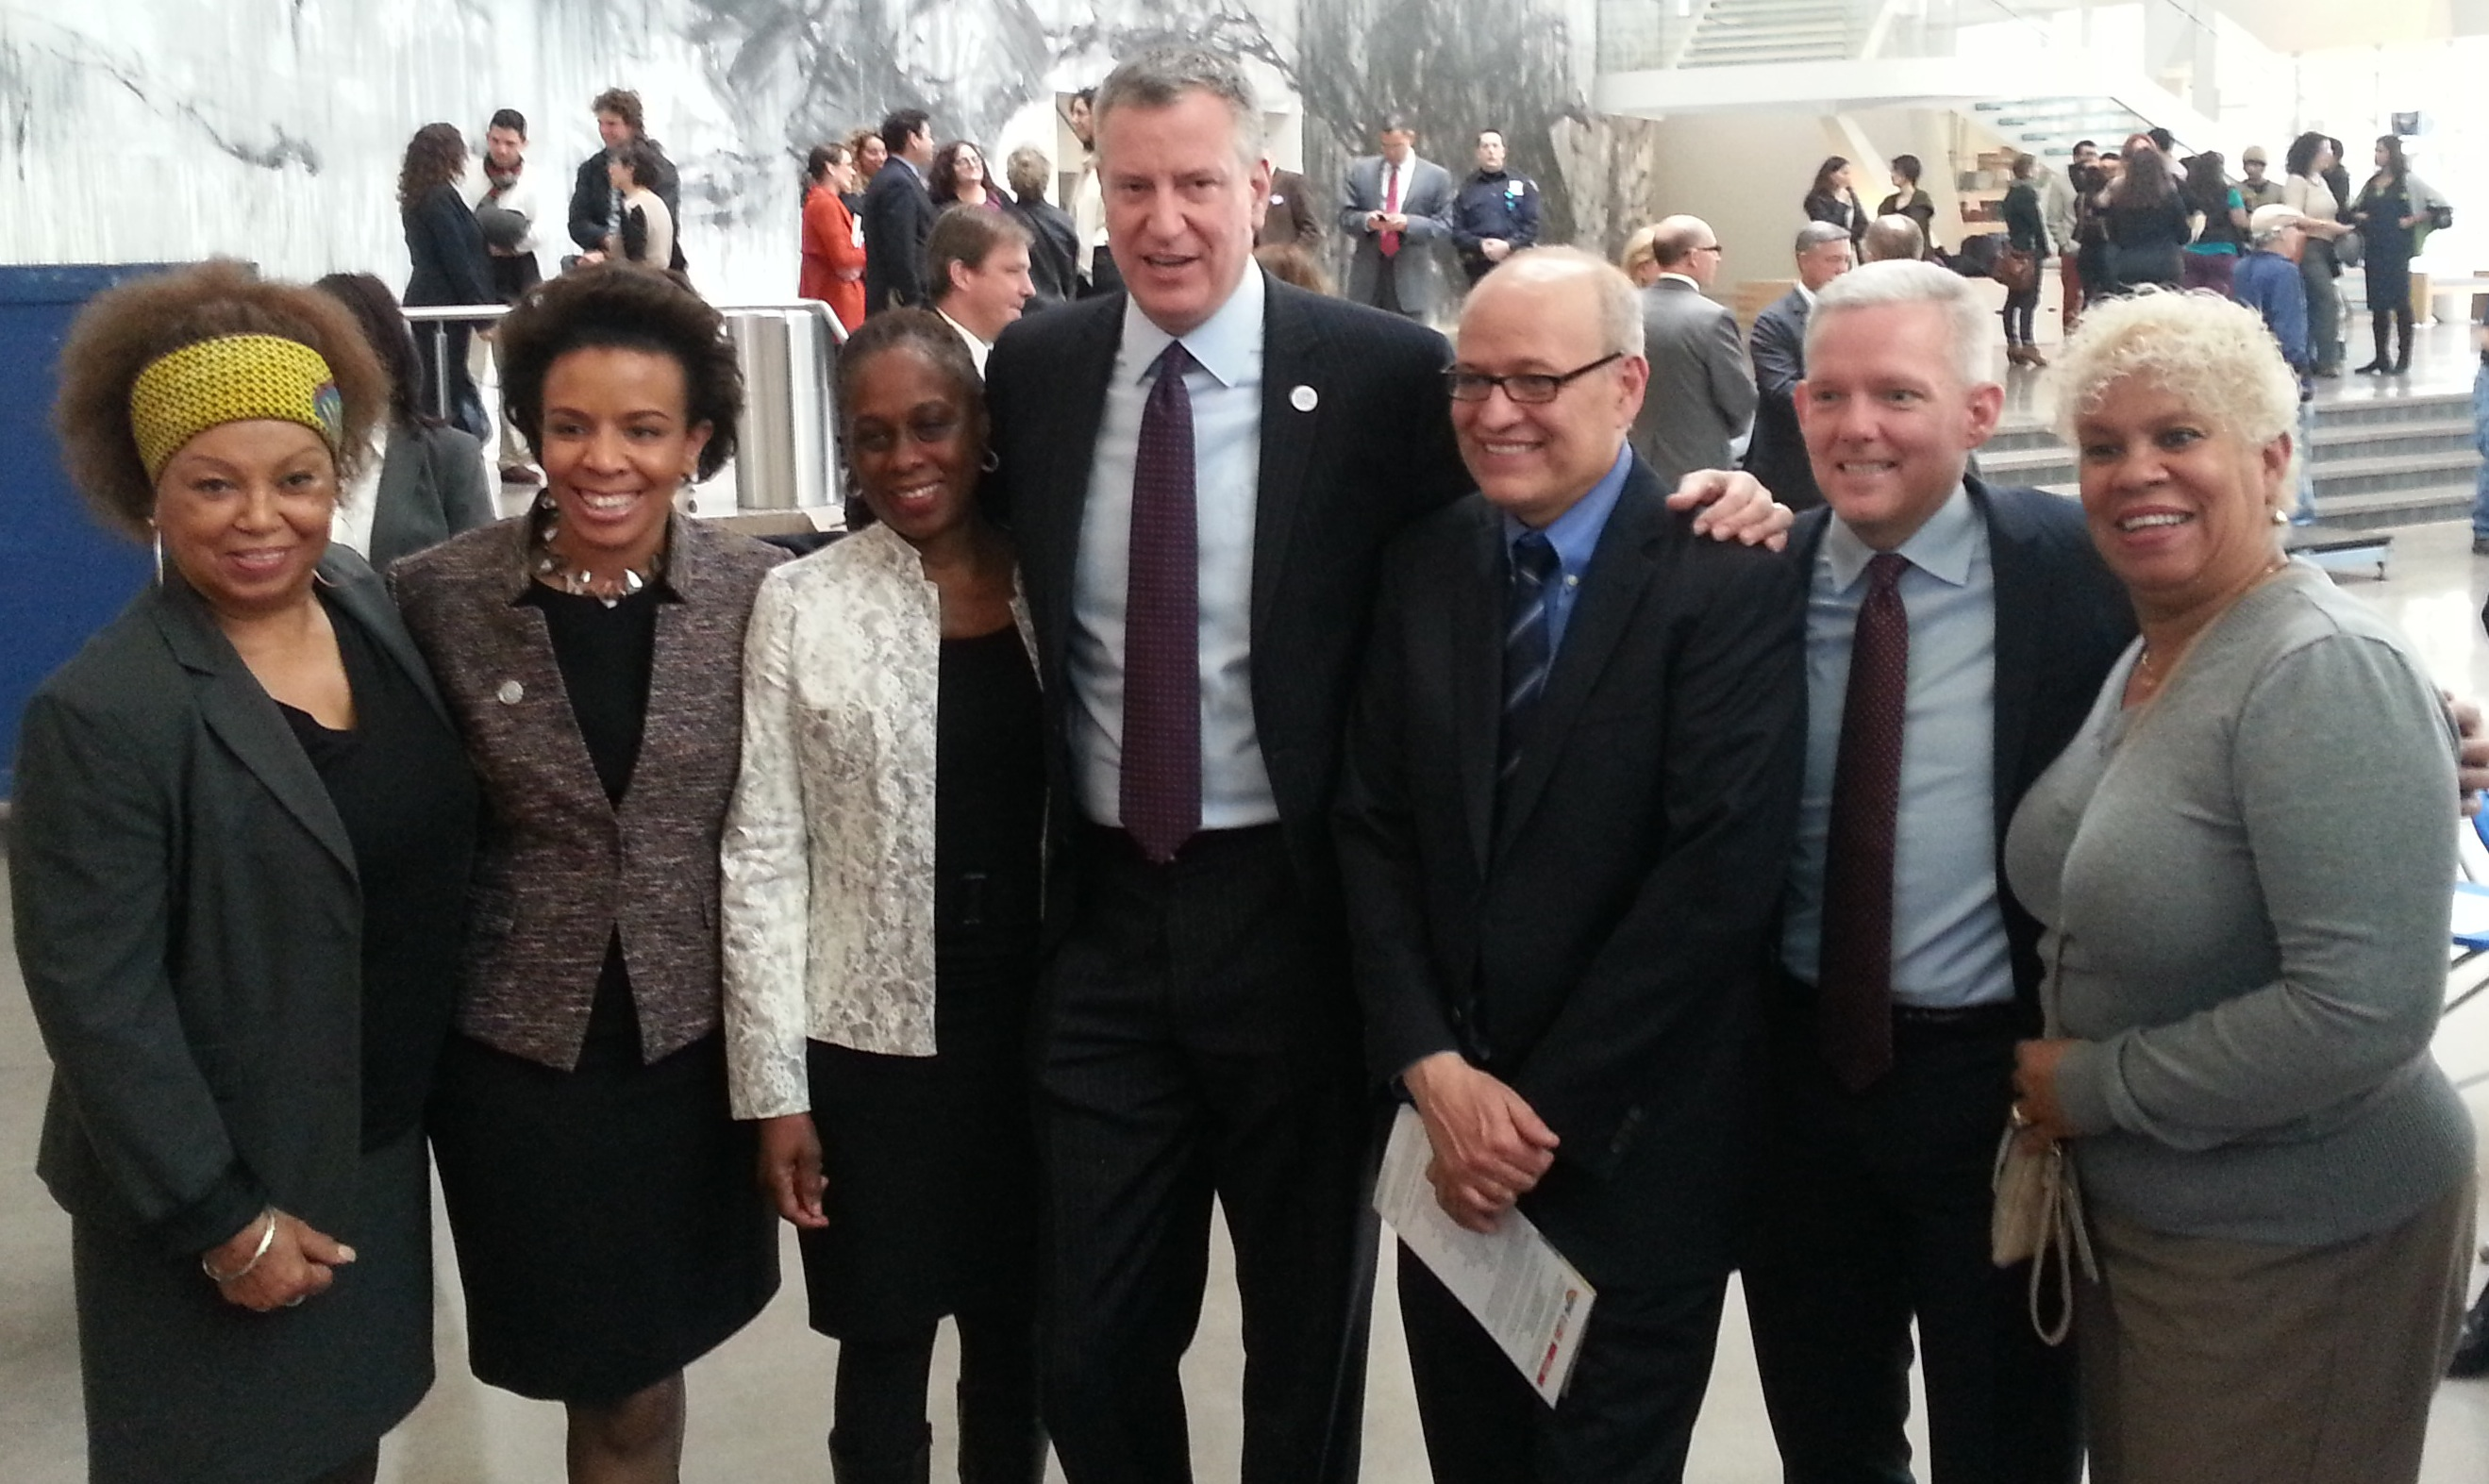 Mayor de Blasio, First Lady Chirlane de Blasio, Tom Finkelpearl, Councilmembers Jimmy Van Bramer & Laurie Cumbo. Photo by